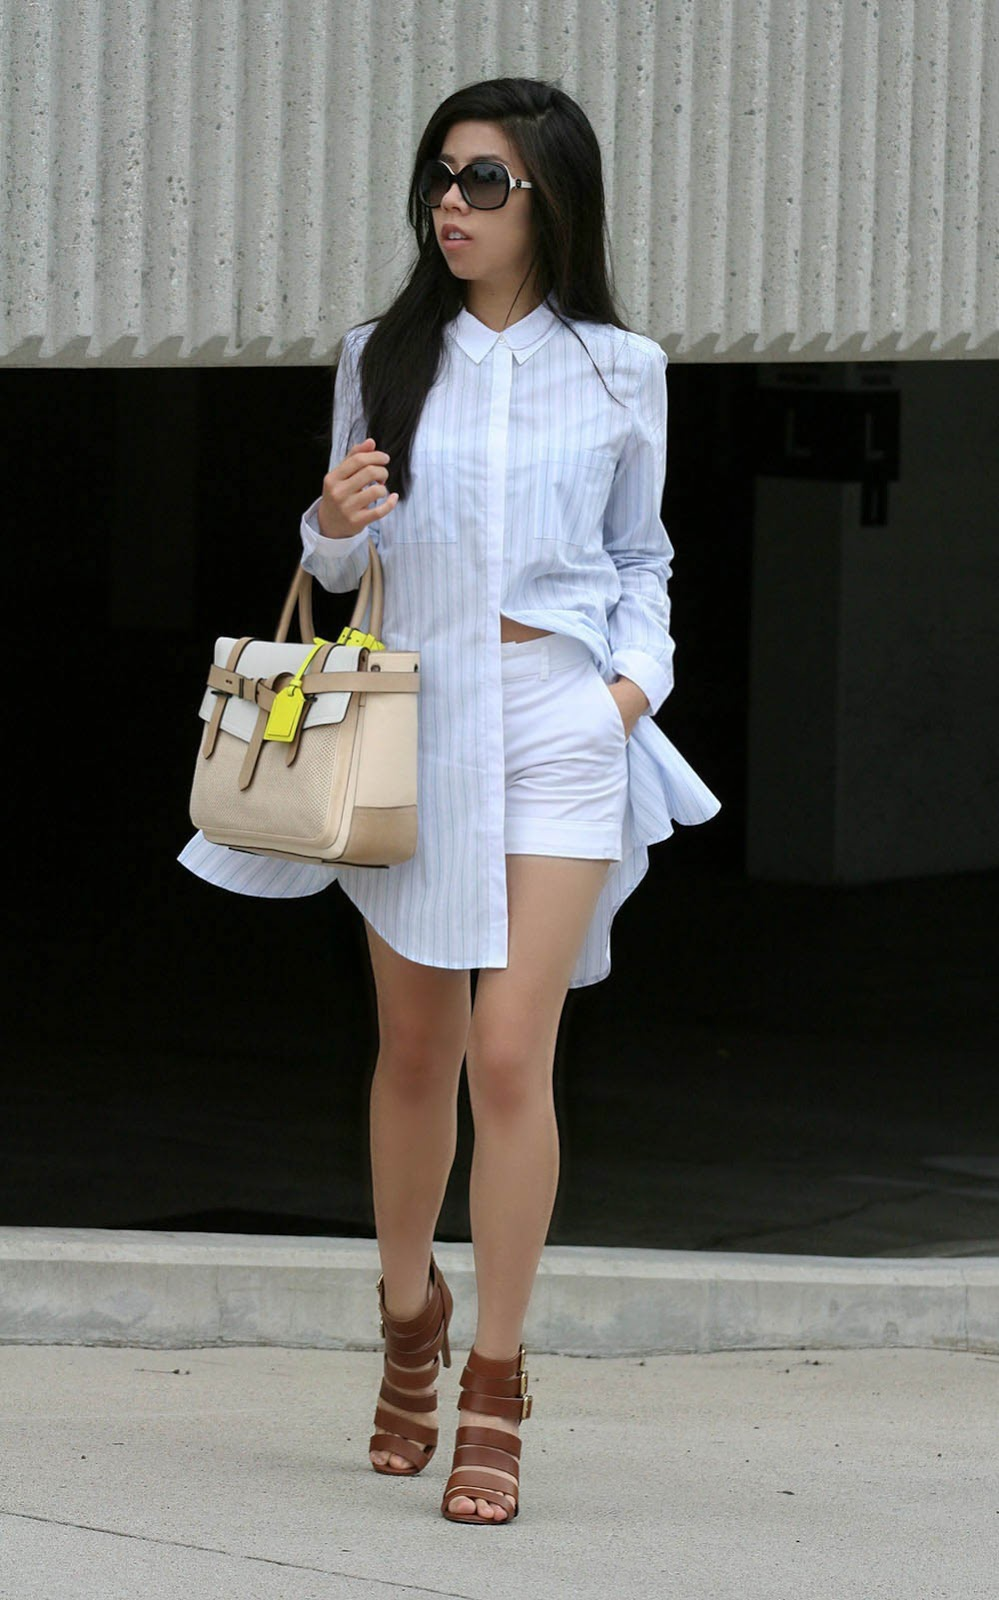 How to wear a Shirtdress _ Lampshading Trend_Celebrity Fashion Tips_Adrienne Nguyen_Invictus